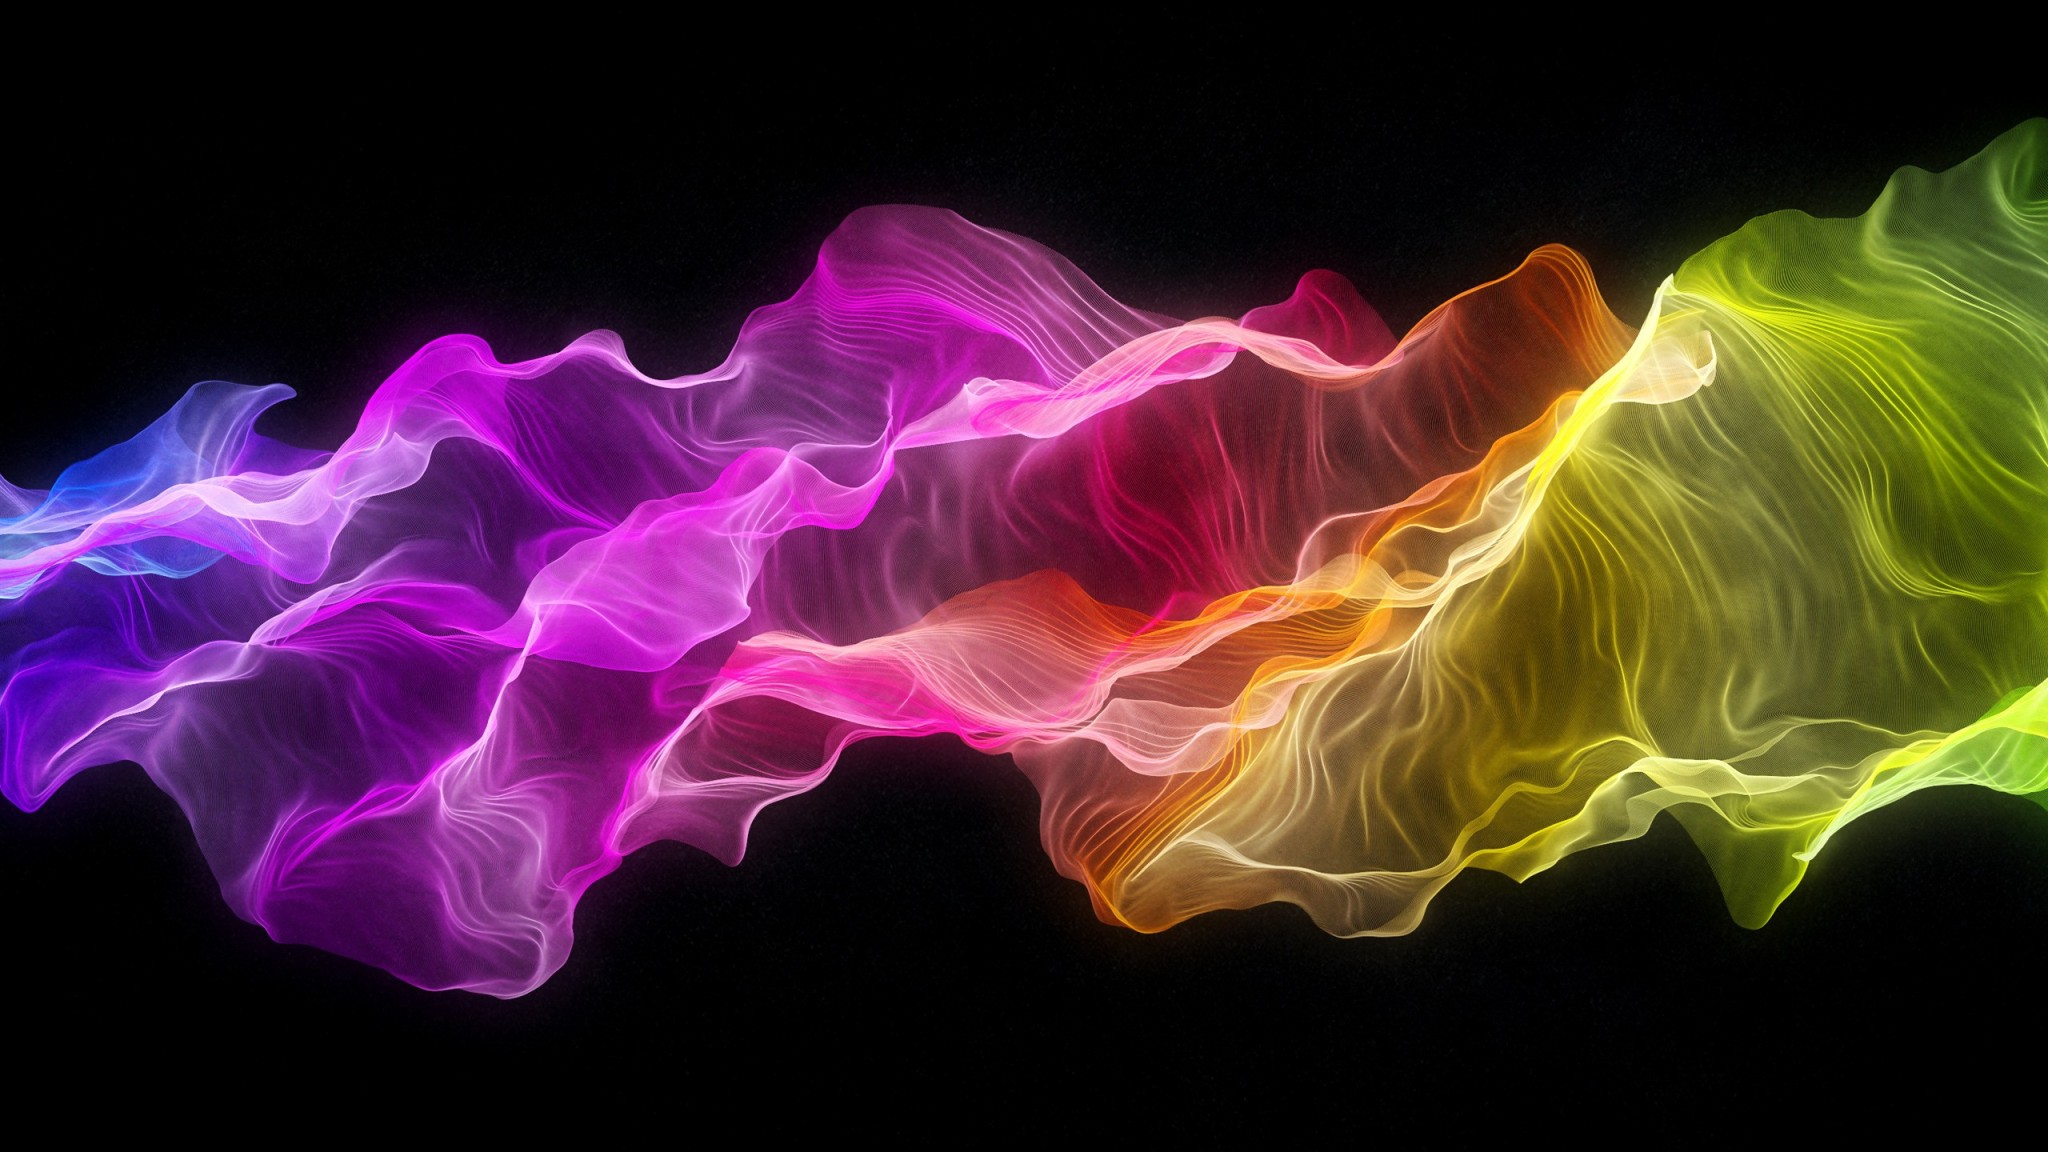 Colorful Flame widescreen wallpaper Wide WallpapersNET 2048x1152